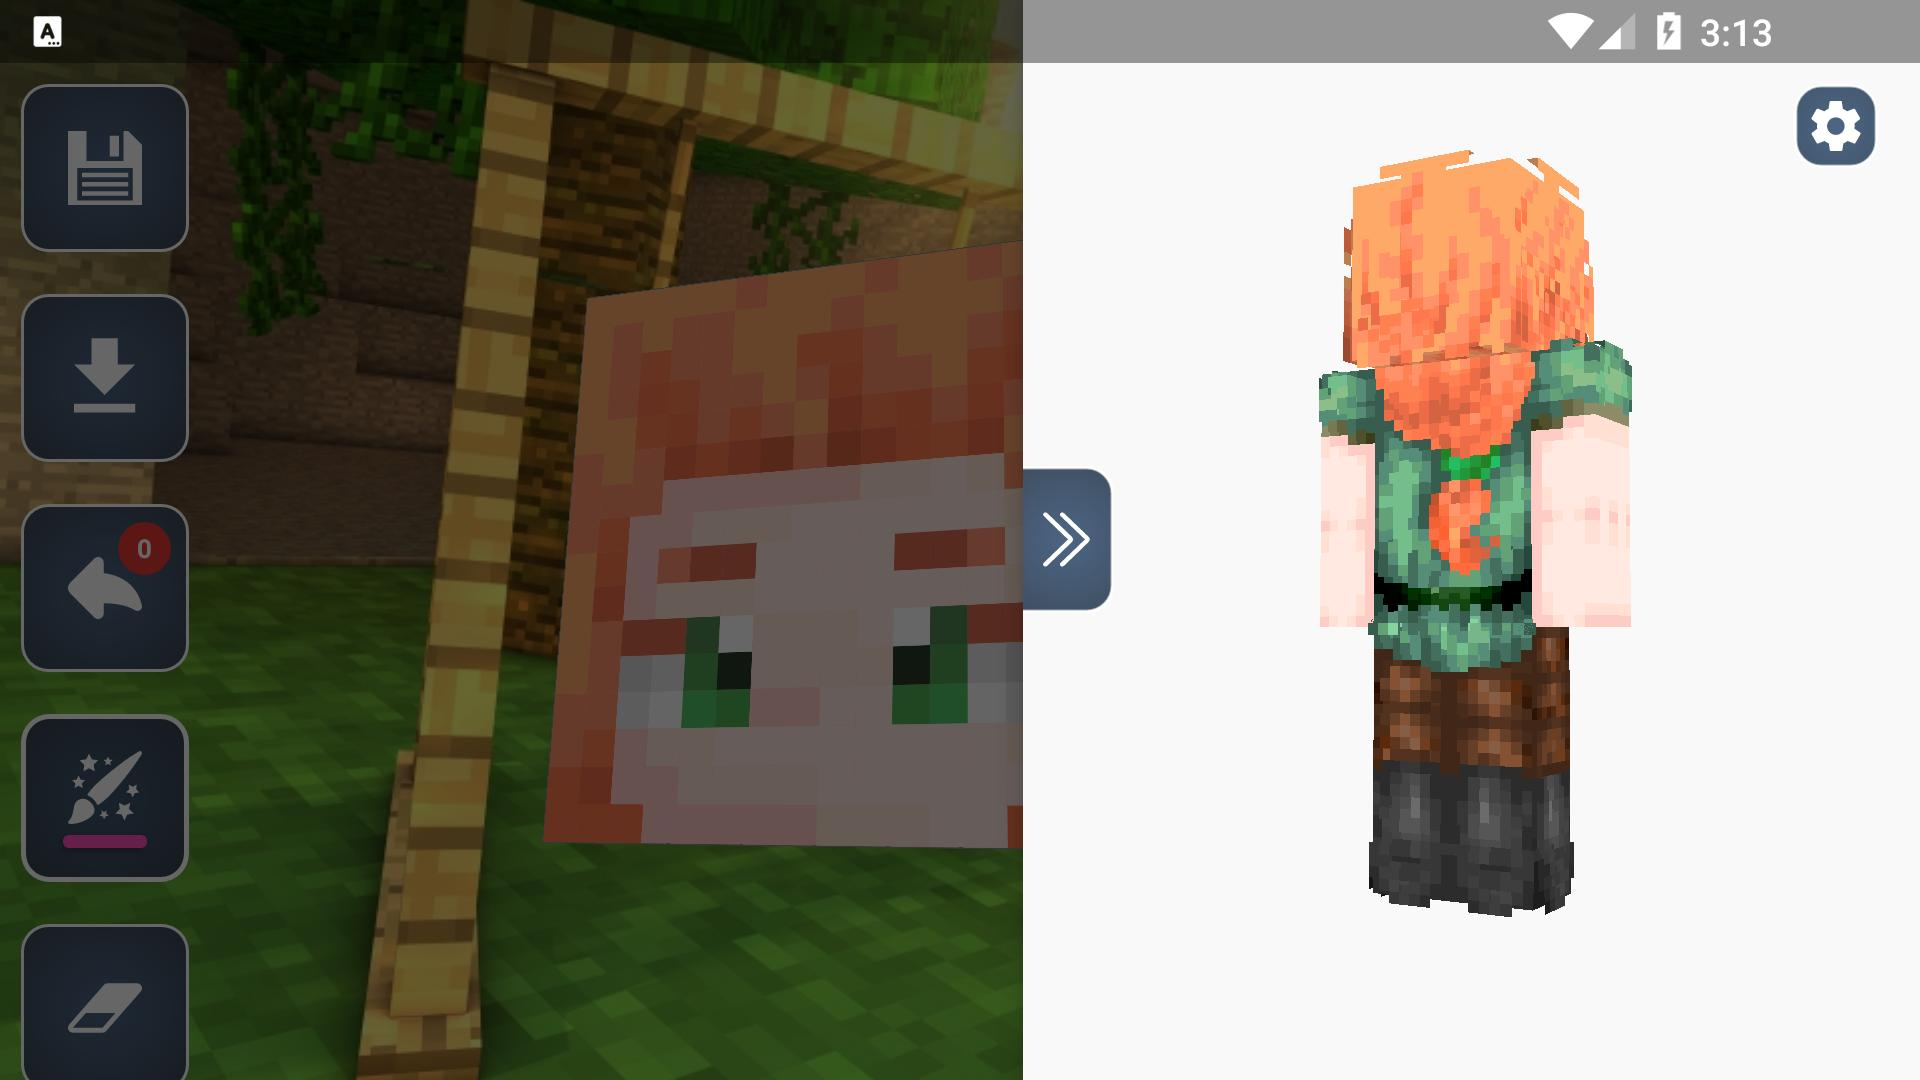 Hd Skins Editor For Minecraft Pe 128x128 For Android Apk Download